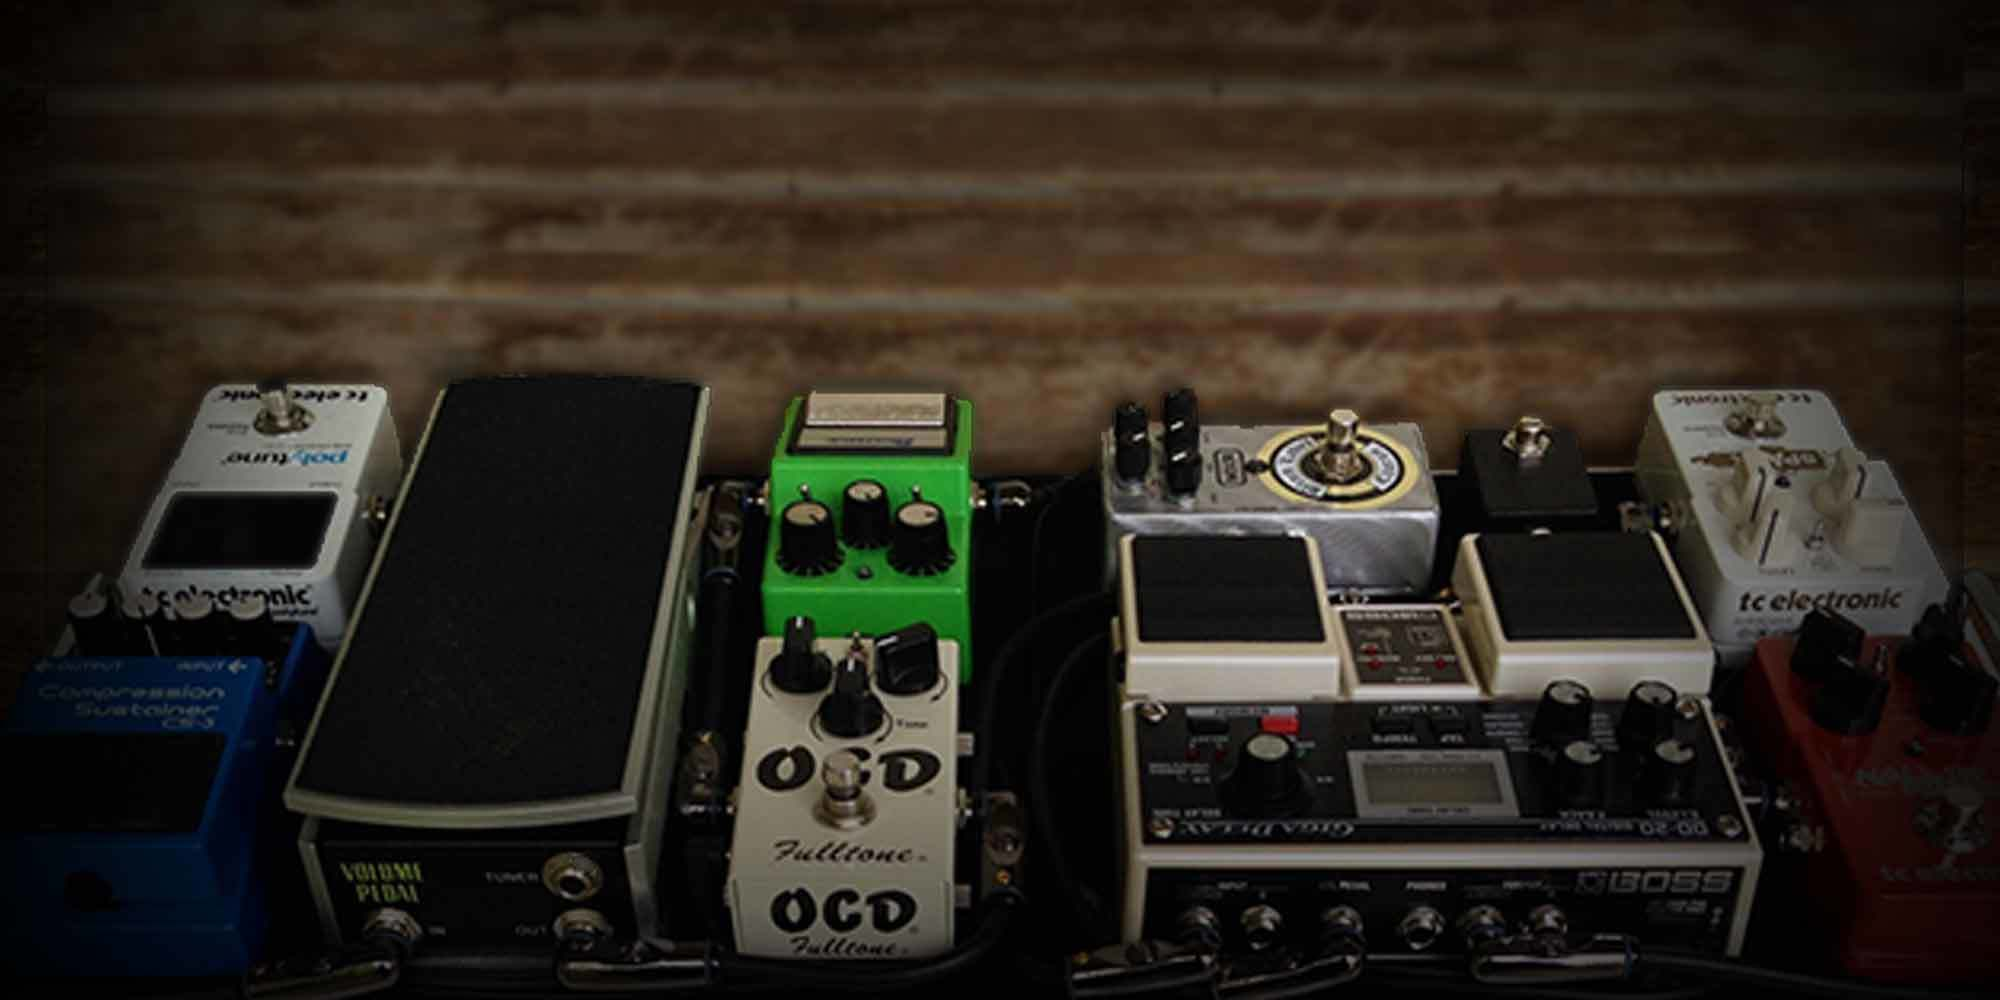 11 Pedals To Save Space And Money On Your Board Reverb News Jimmy Hendrix Fuzz Face Guitar Effect Schematic Diagram Whether Youre Putting Together A Grab N Go Or Trying Cram 50 Pedaltrain Pt Nano Every Musician Knows The Importance Of Saving